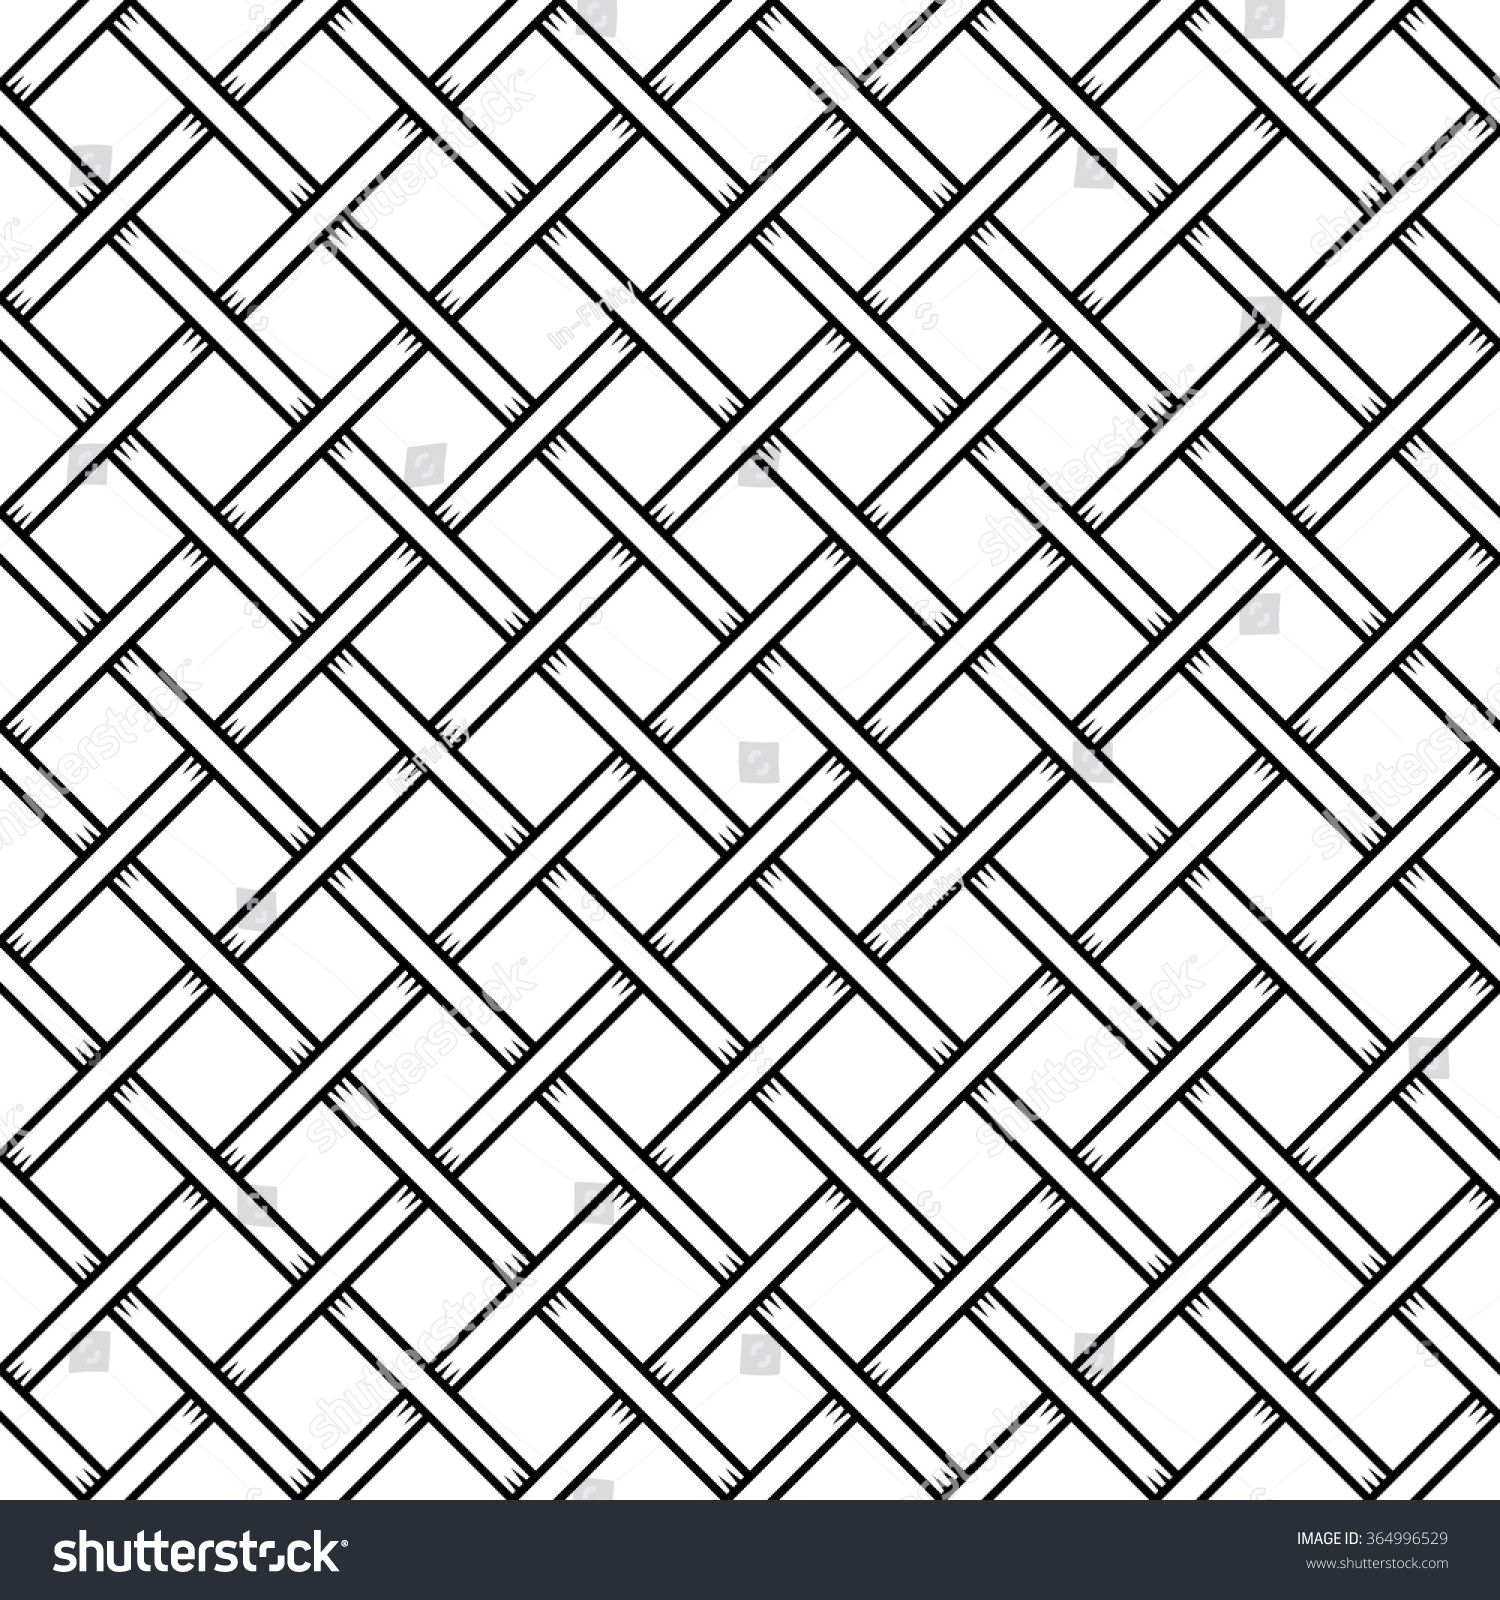 Seamless Cage Texture Wire Mesh Vector Stock Vector (2018) 364996529 ...